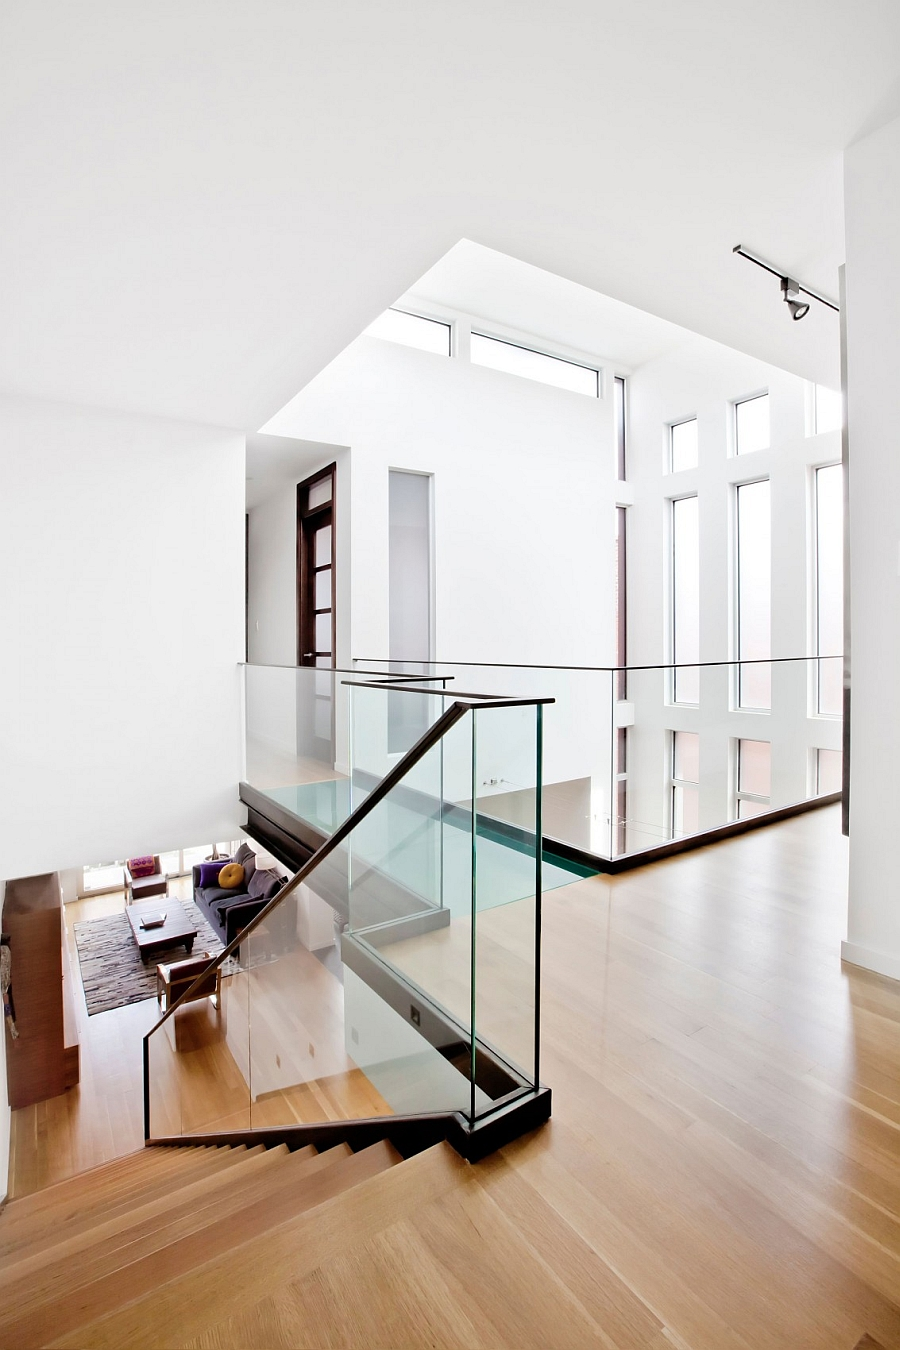 Glass staircase railing and walkway give the home an airy appearance